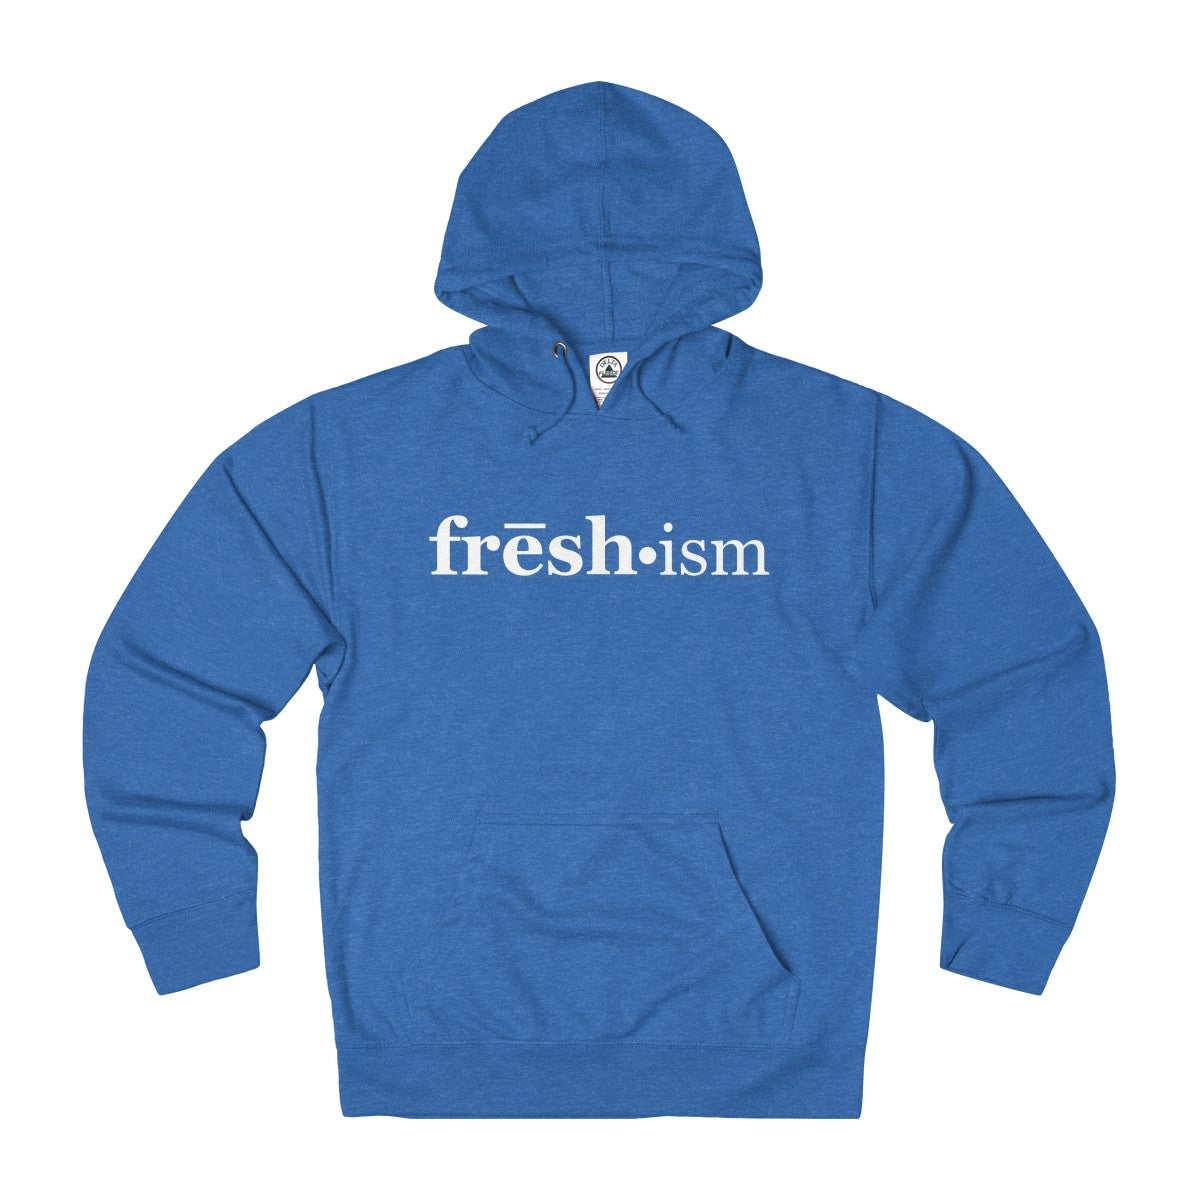 Freshism Unisex French Terry Hoodie